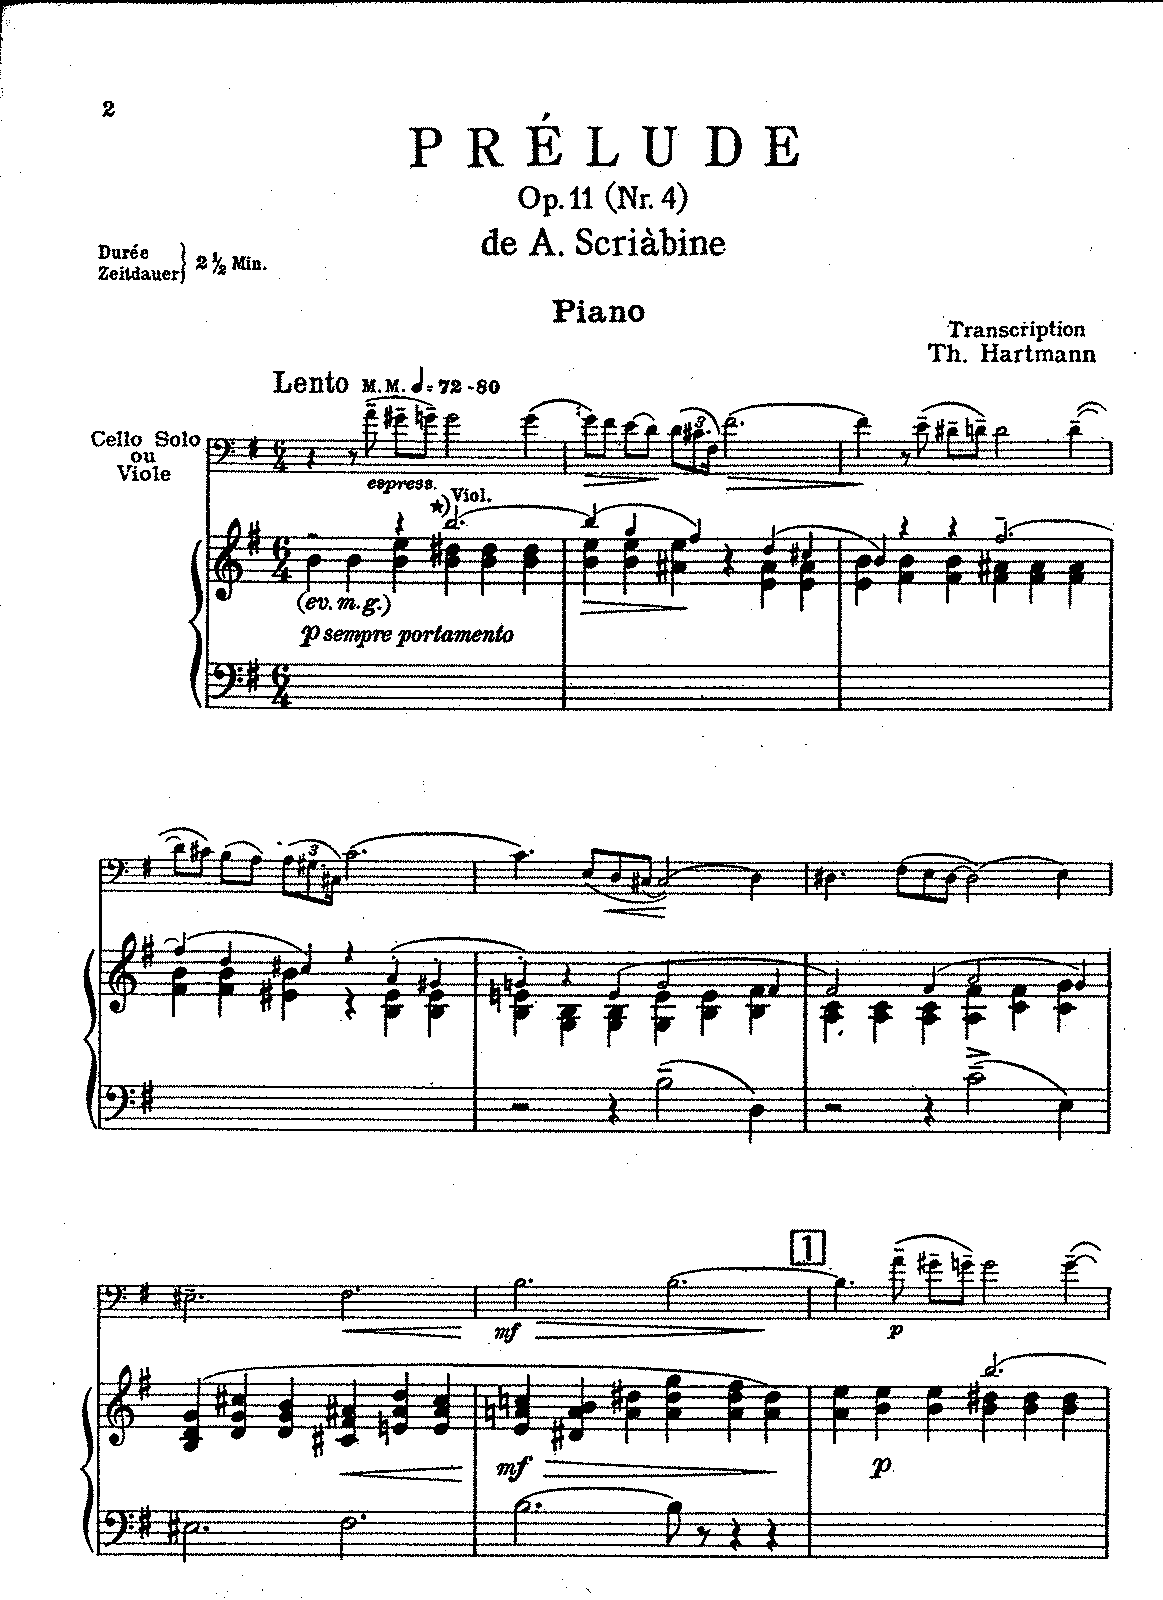 Scriabin - Op.11 - Transcription Hartmann.pdf